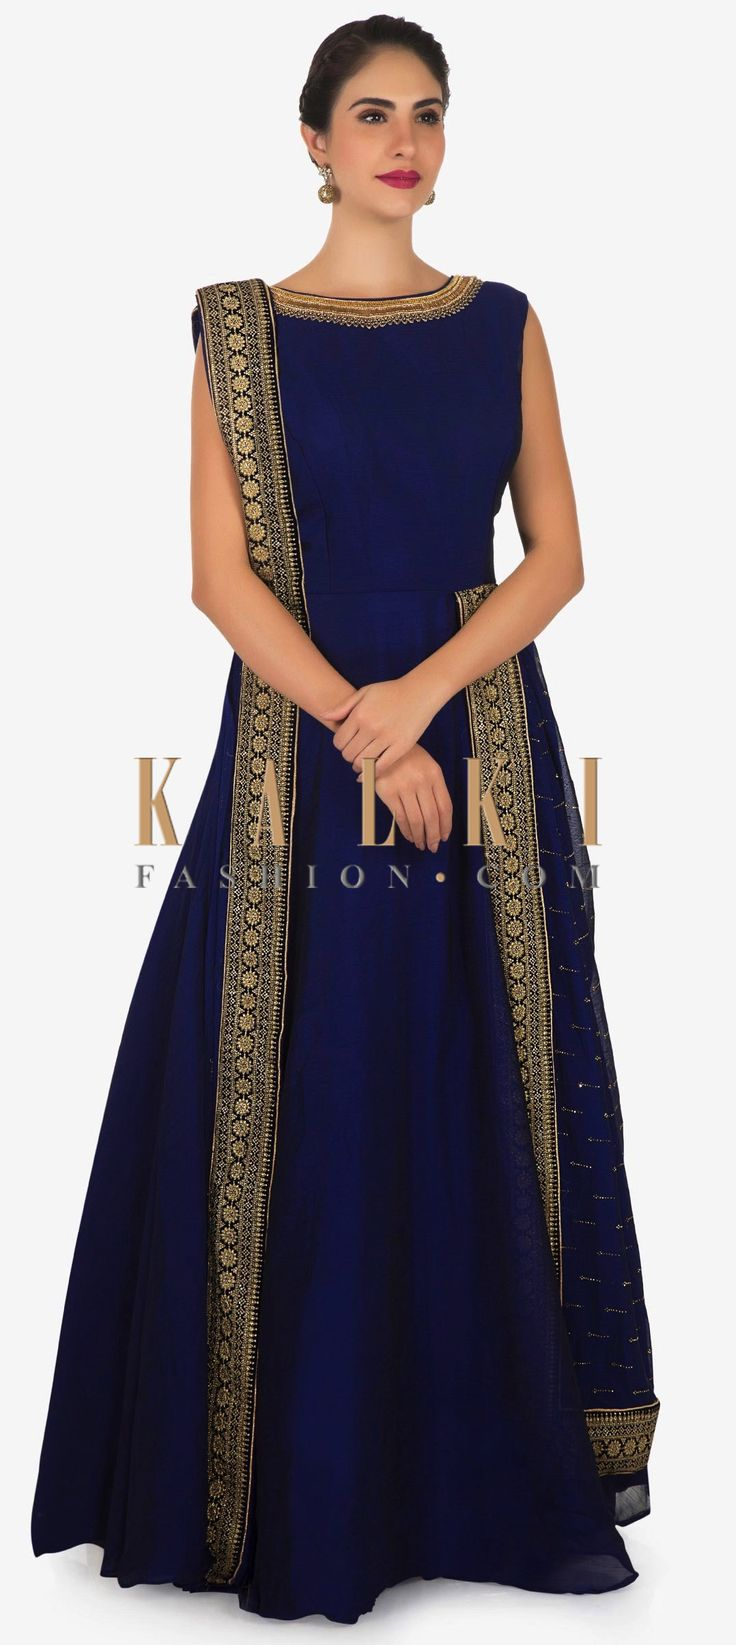 Buy Online from the link below. We ship worldwide Click Anywhere to Tag  Navy blue anarkali suit in chiffon with attach kundan embroidered dupatta only on Kalki  Anarkali suit featuring in navy blue chiffon. High neckline is embellished in moti and cut dana embroidery. Enhanced in attach drape dupatta at shoulder and waist with kundan work all over. Slight variation in color is possible.